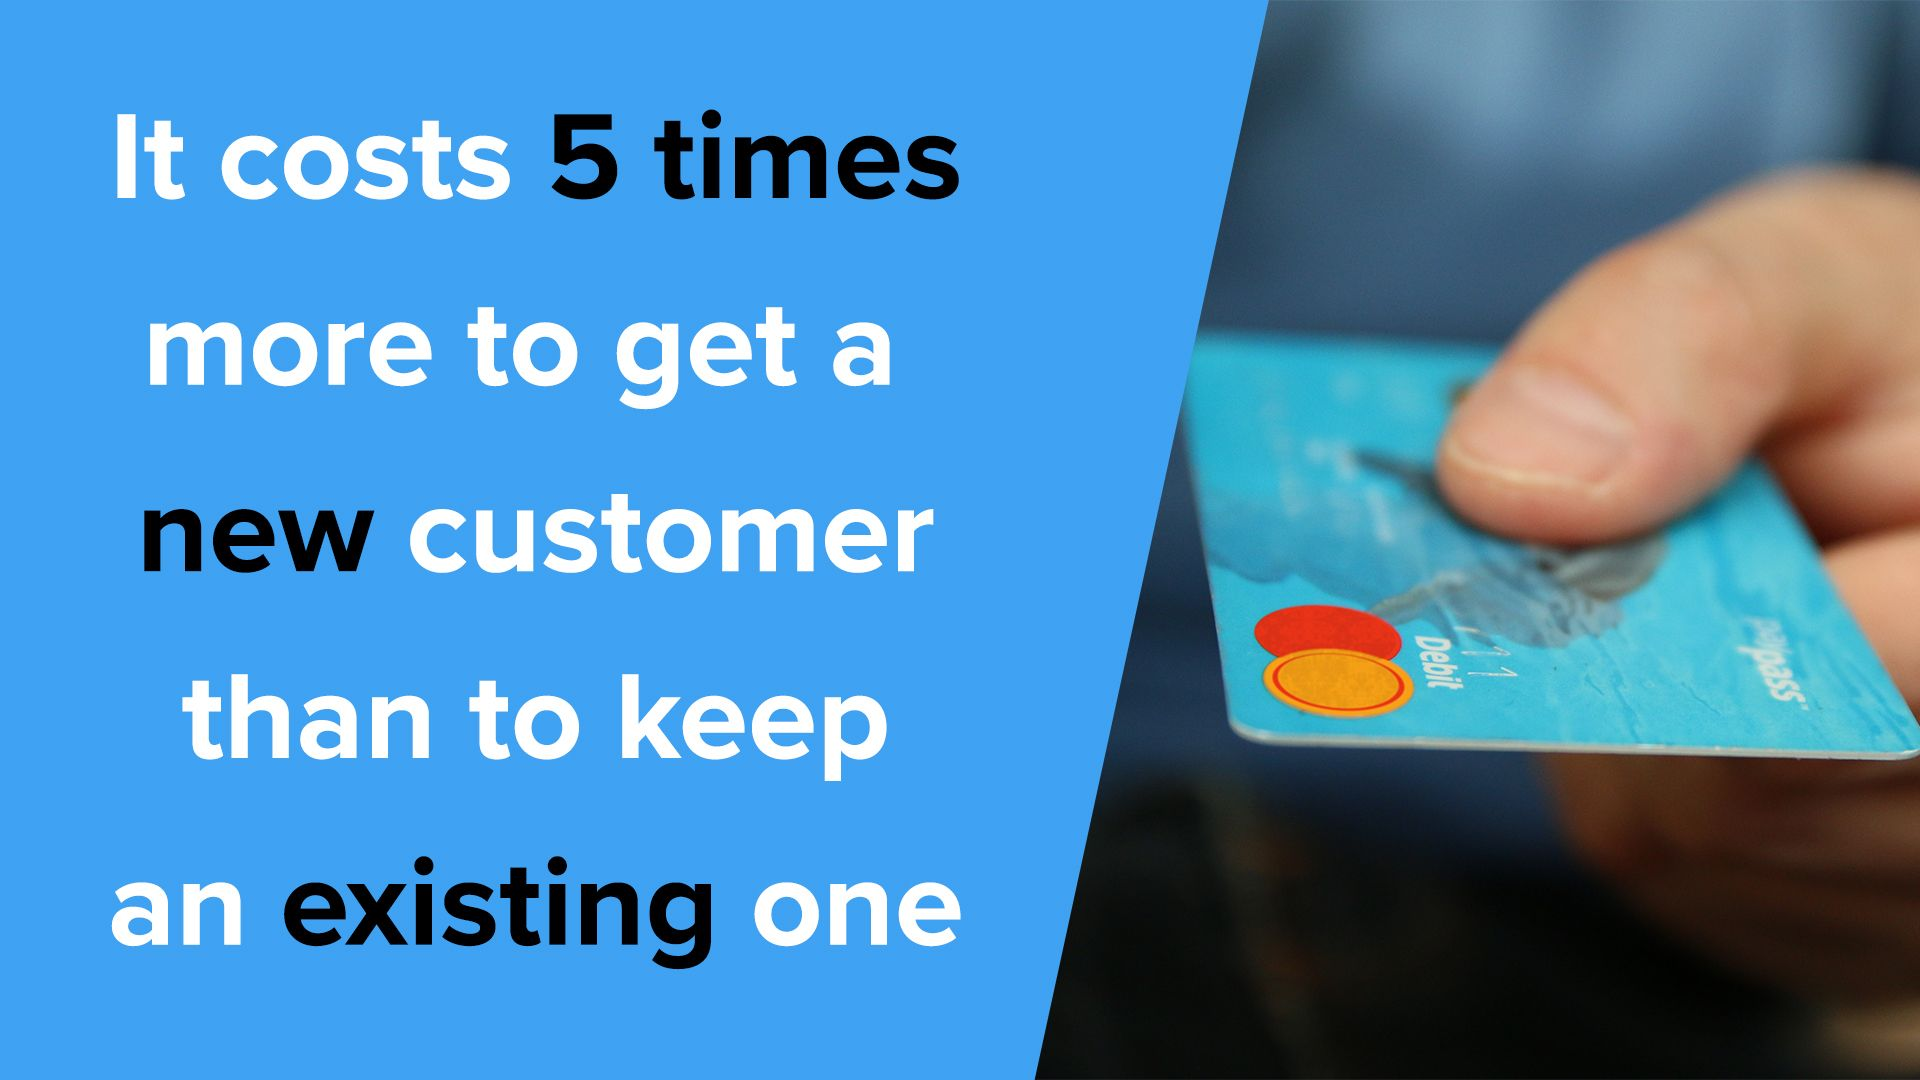 It costs 5 times more to get a new customer than to keep an existing one